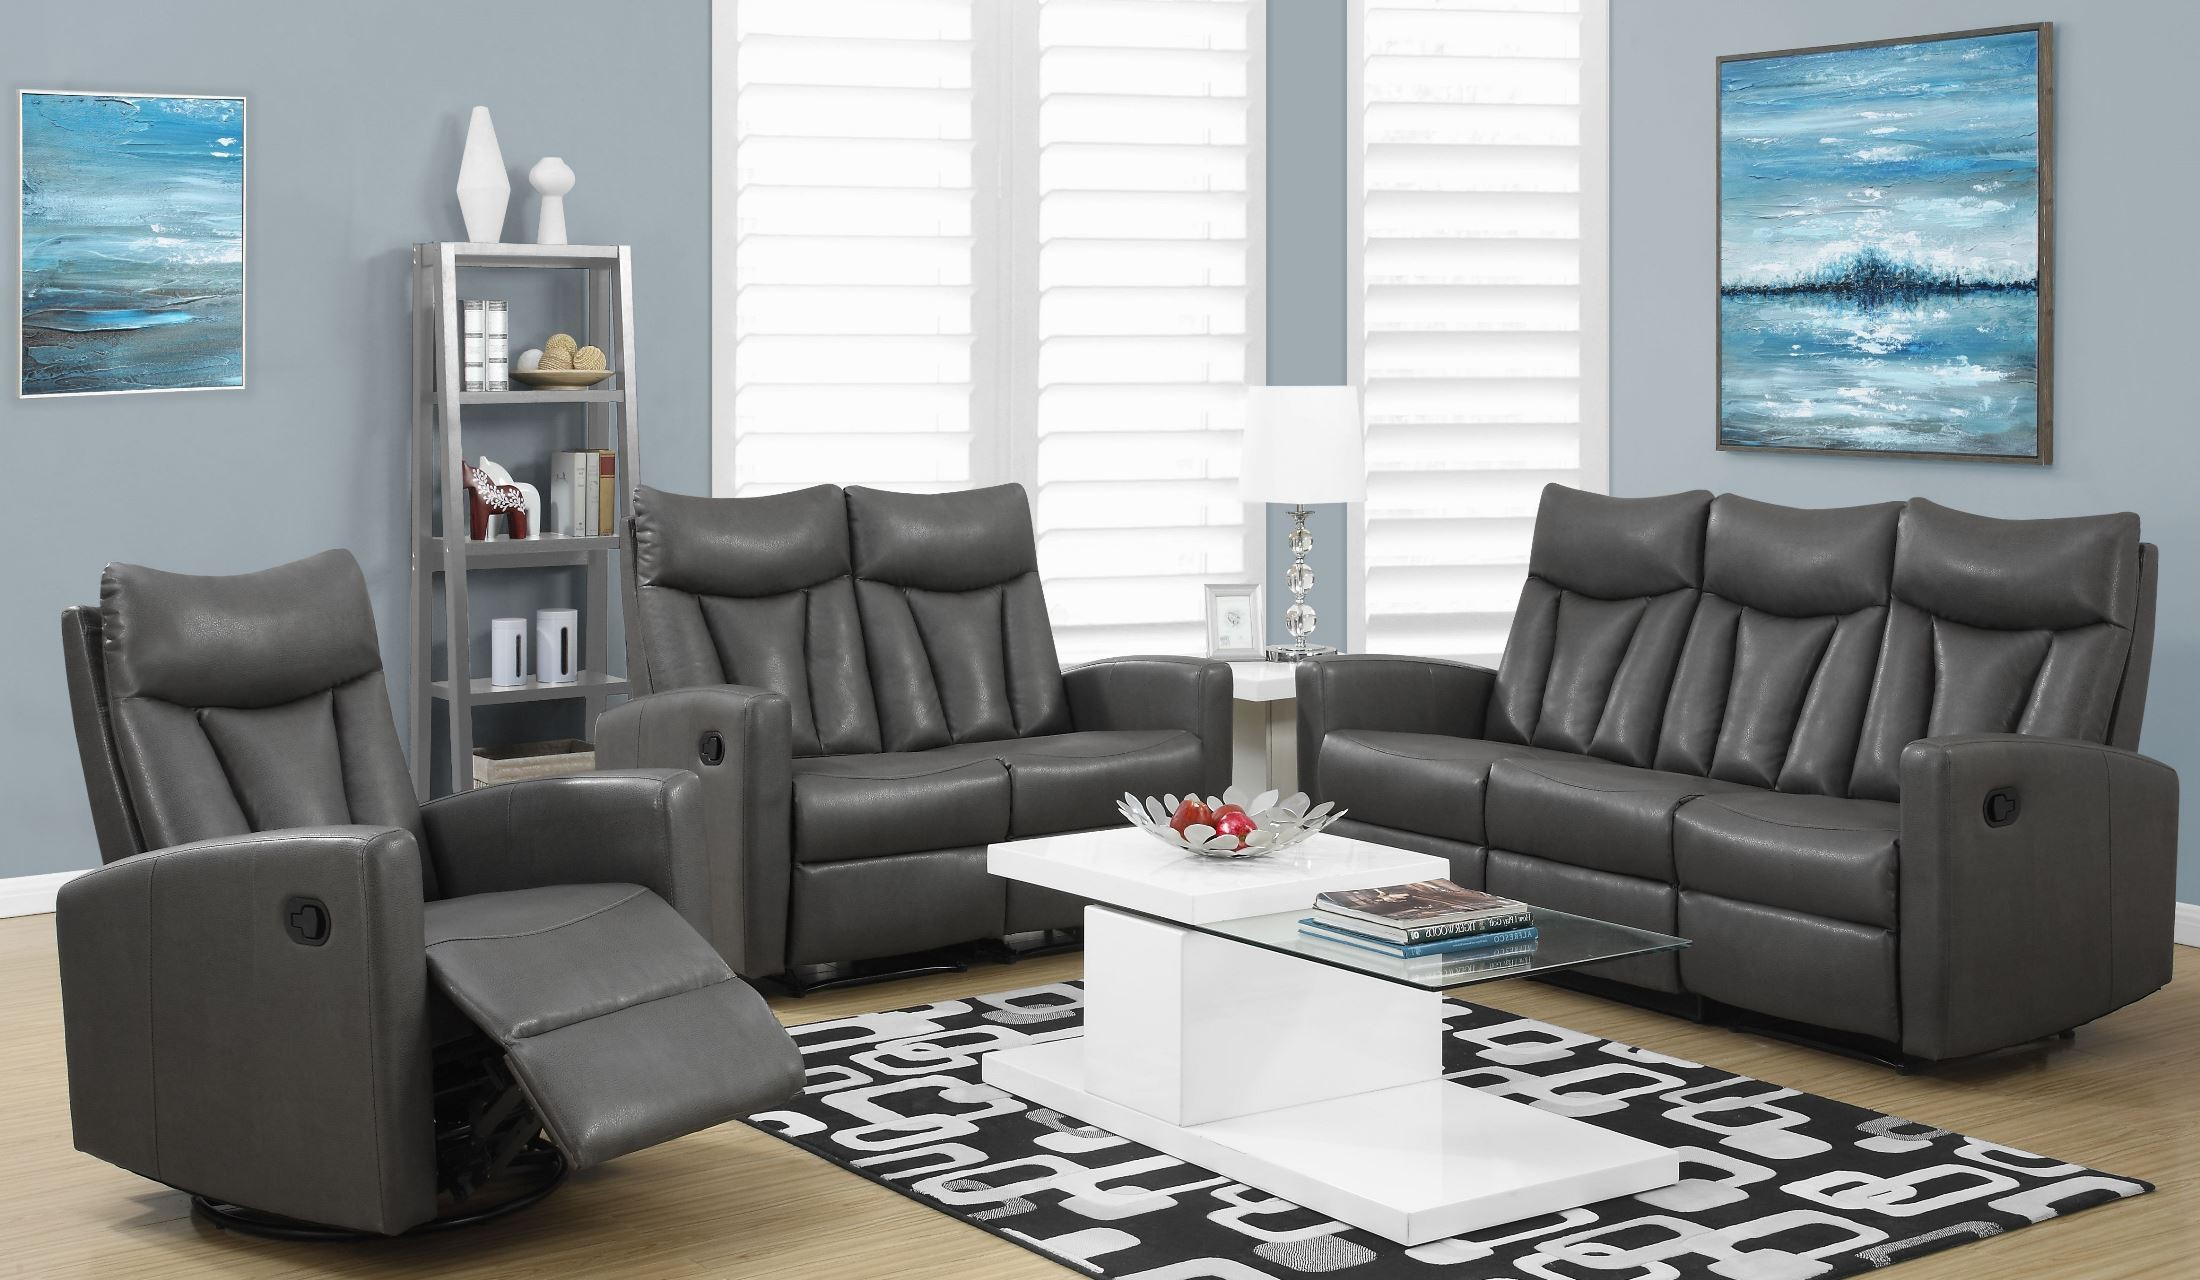 87gy 3 Charcoal Gray Bonded Leather Reclining Living Room